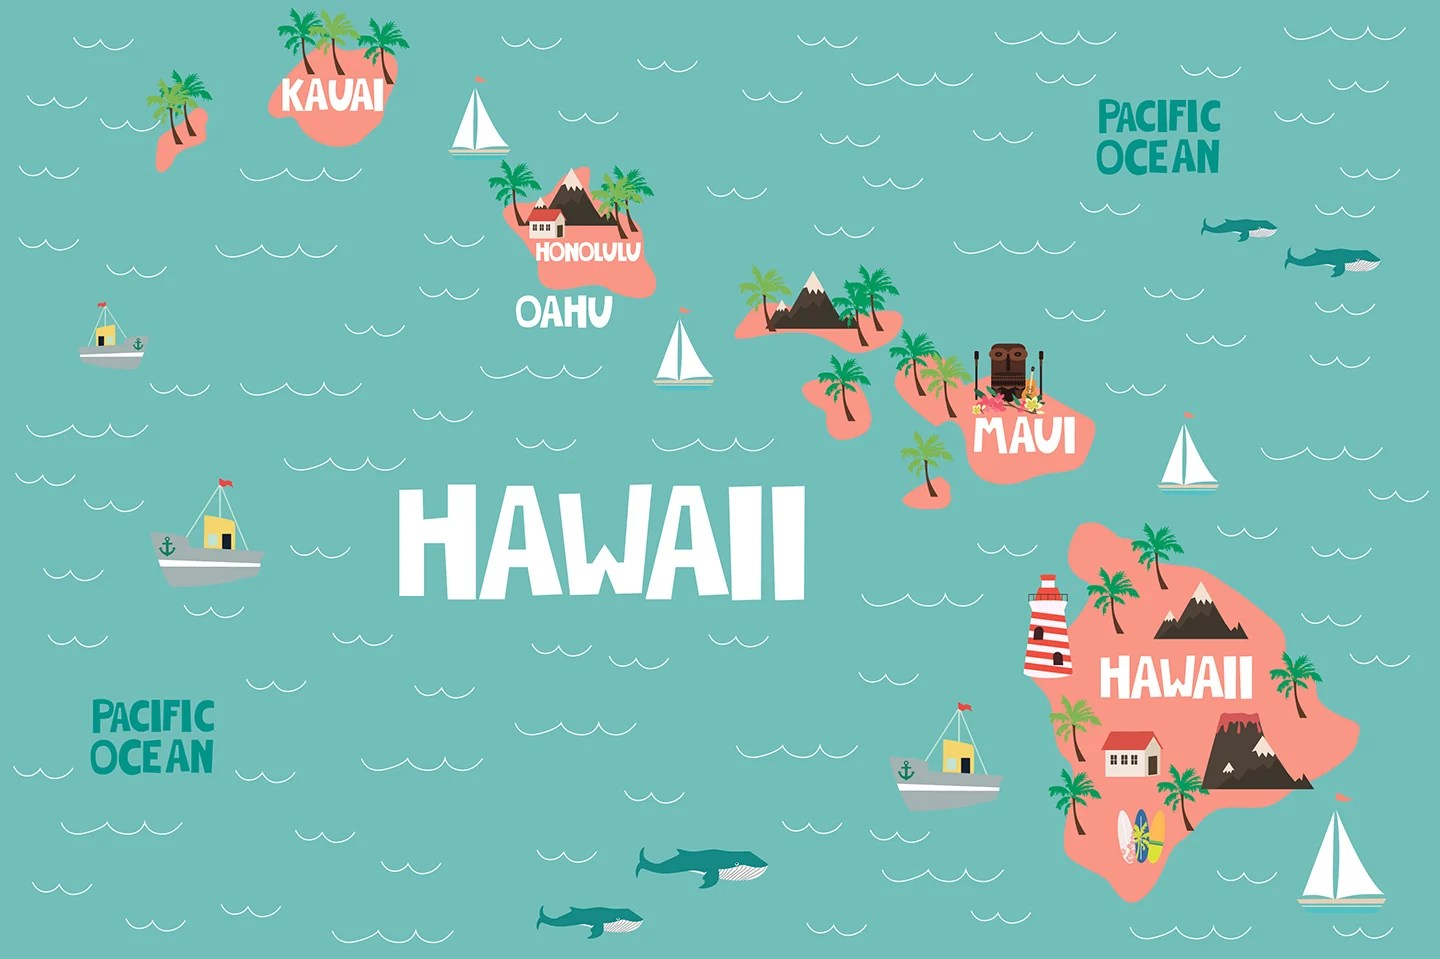 A cartoon map of Hawaii, showing which Hawaiian island is the best for different activities.